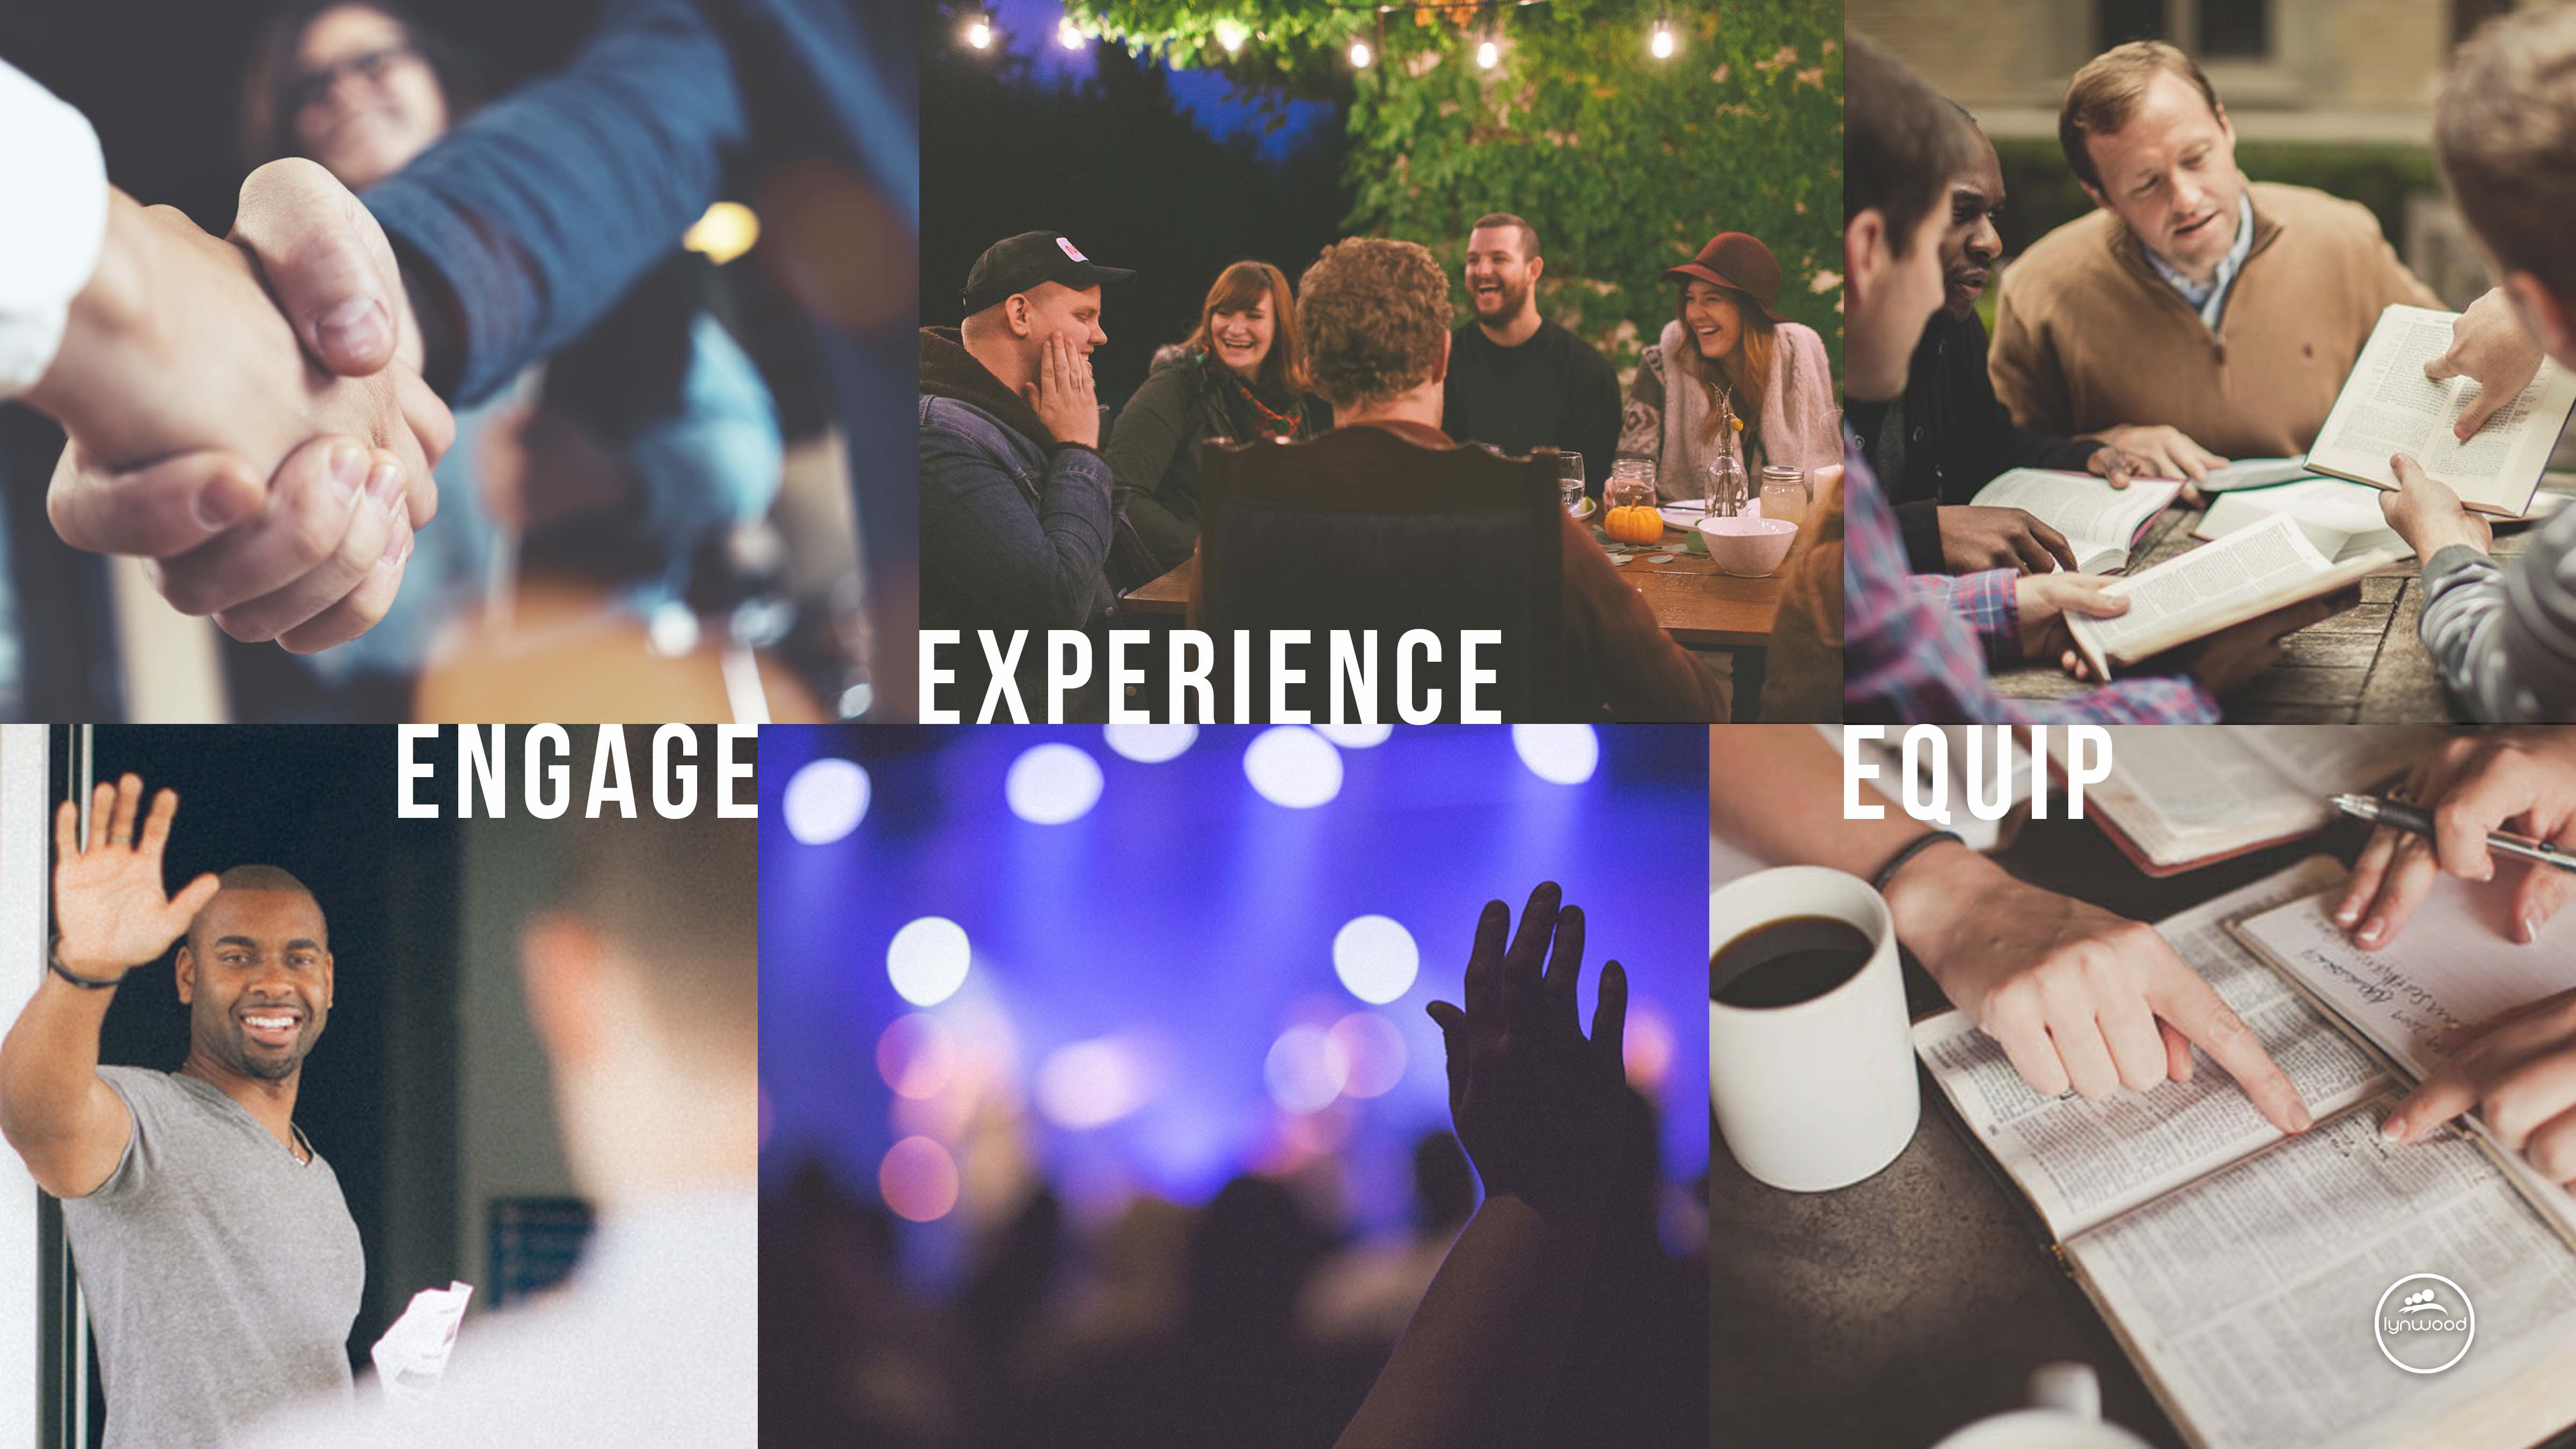 01-27-19 | Engage. Experience. Equip. | Equip | Mark Anderson